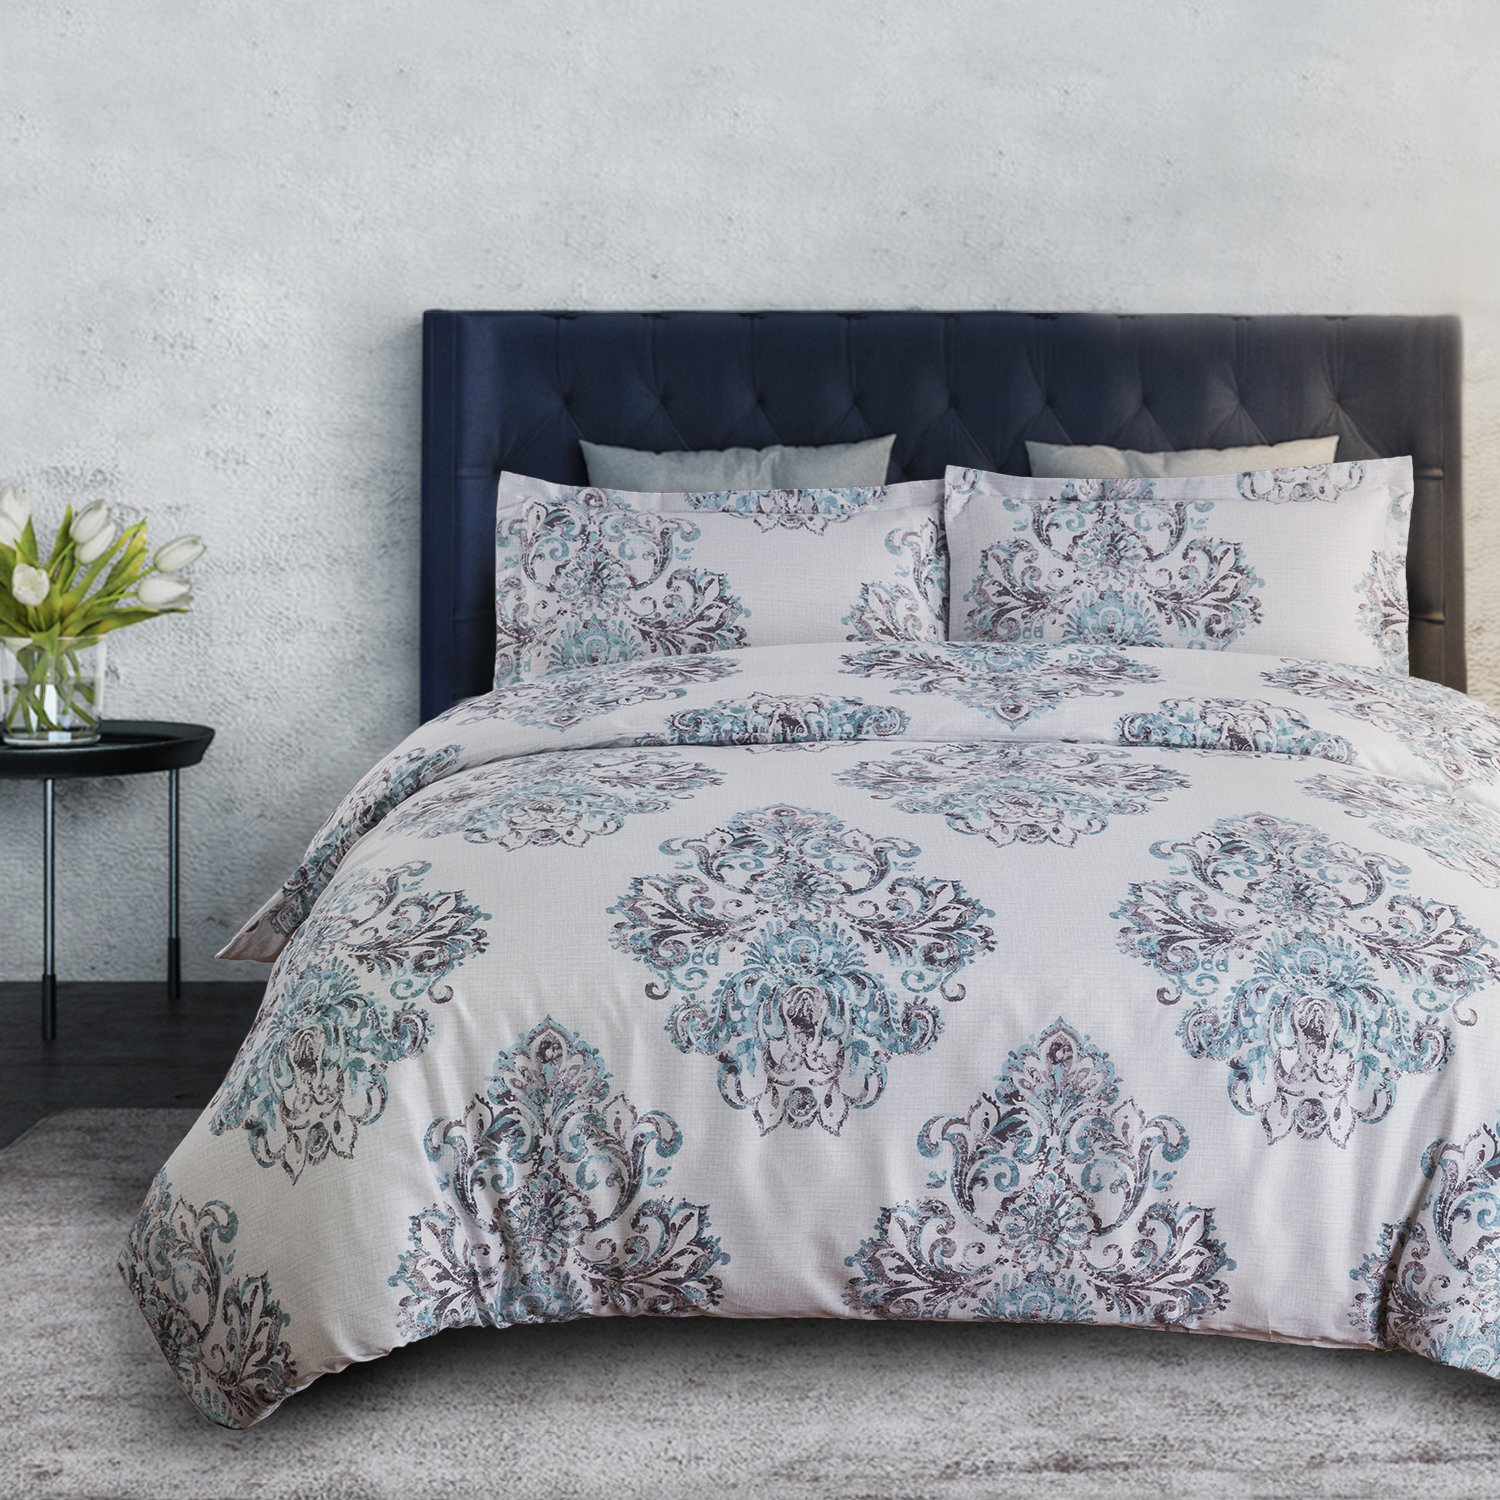 2 Pillow Shams 3 pics Ultra Soft Hypoallergenic Microfiber Quilt Cover Sets 135x200cm Bedsure Floral Printed Duvet Cover Set Single Size Spring Flowers Pattern with Zipper Closure